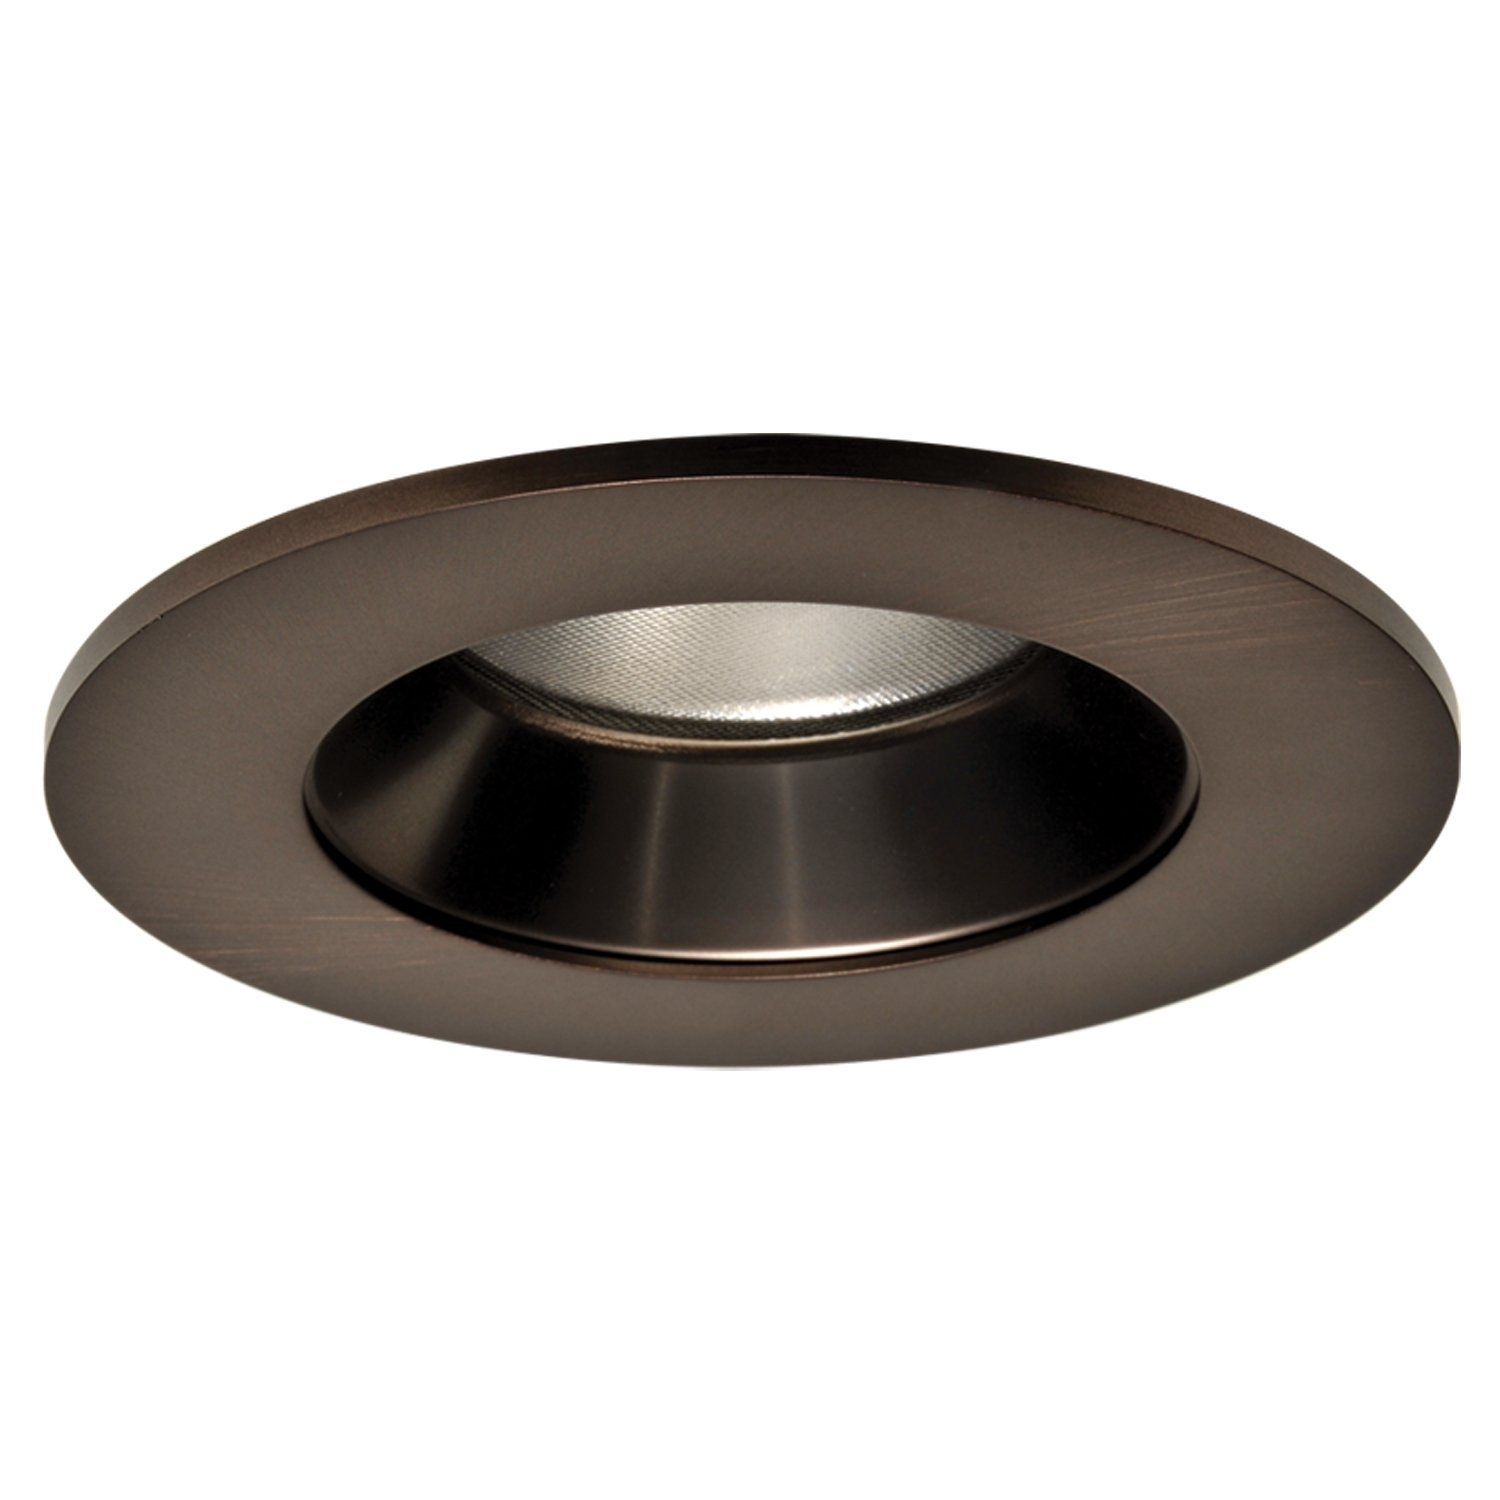 Outdoor Led Recessed Ceiling Lights • Led Lights Decor With Regard To Outdoor Led Recessed Ceiling Lights (View 9 of 15)